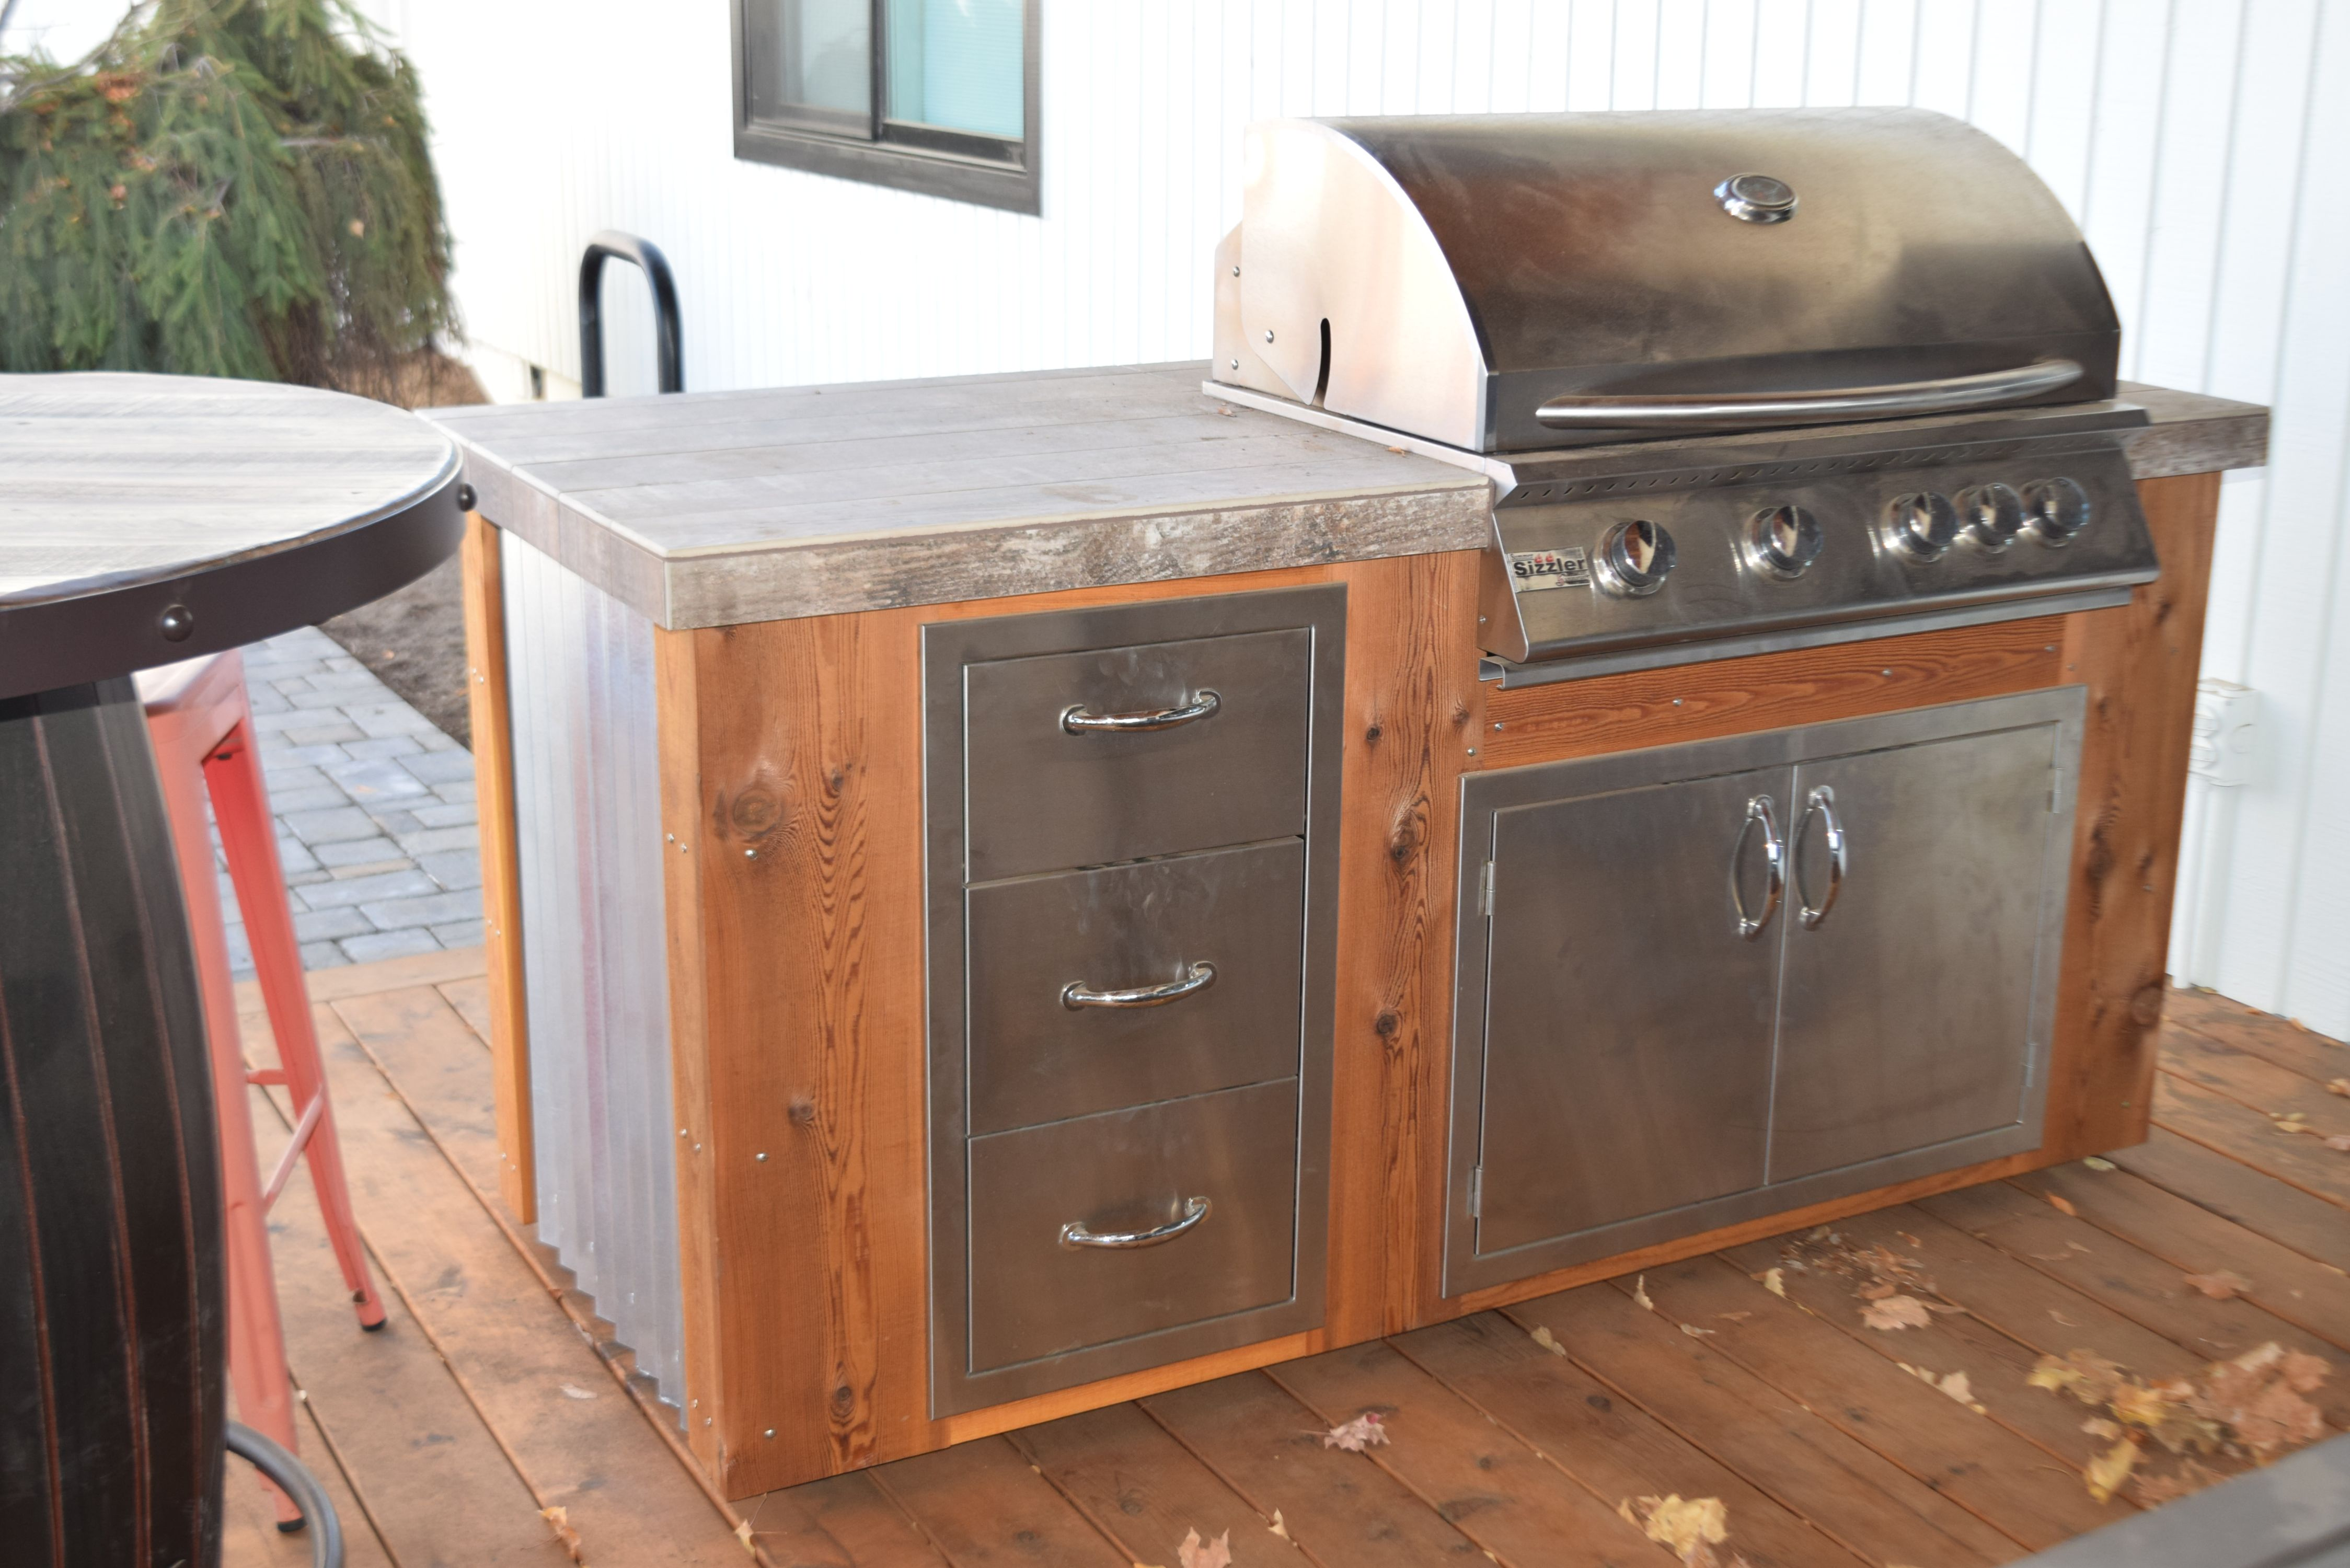 Outdoor Kitchen Corrugated Metal Wood Stainless Steel Grill